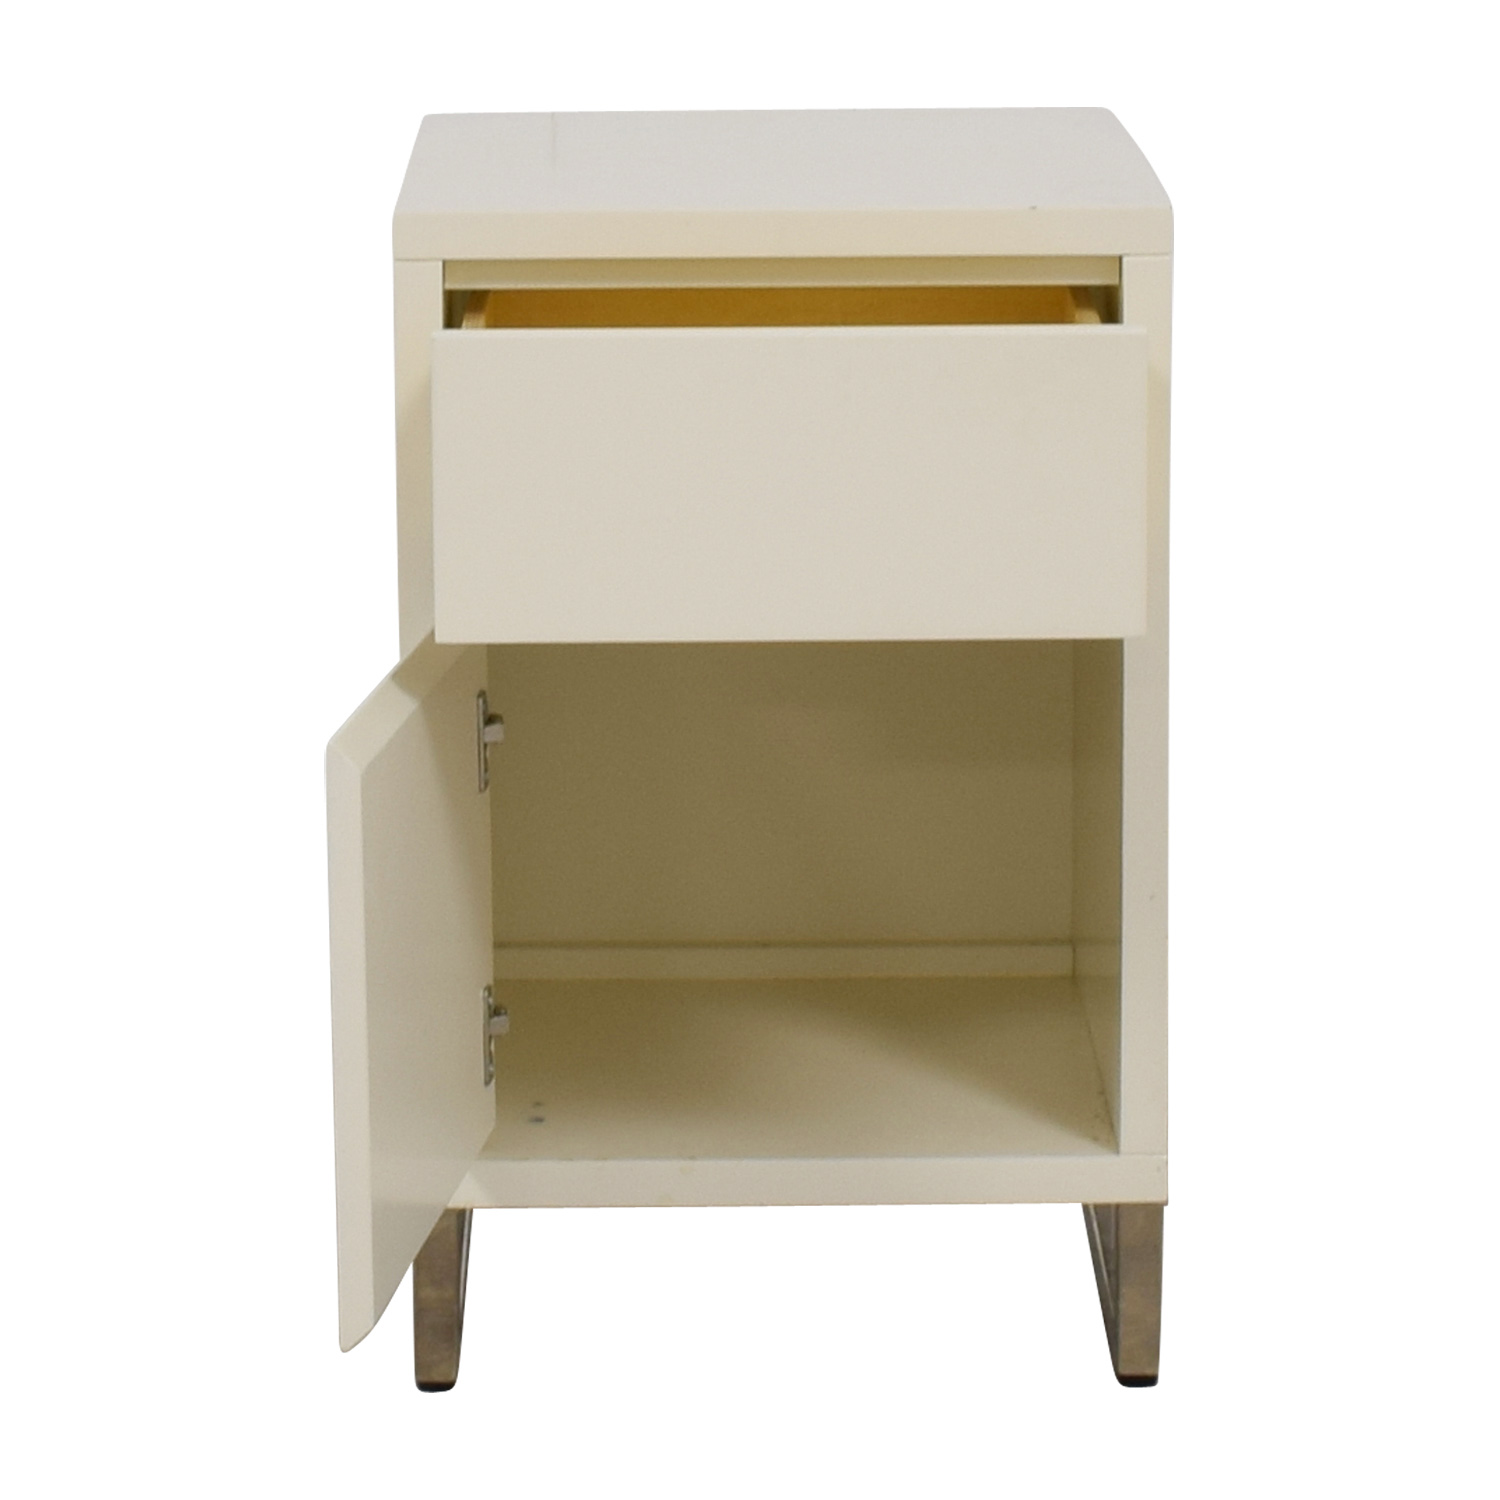 West Elm White Single Drawer Nightstand with Storage / Sofas